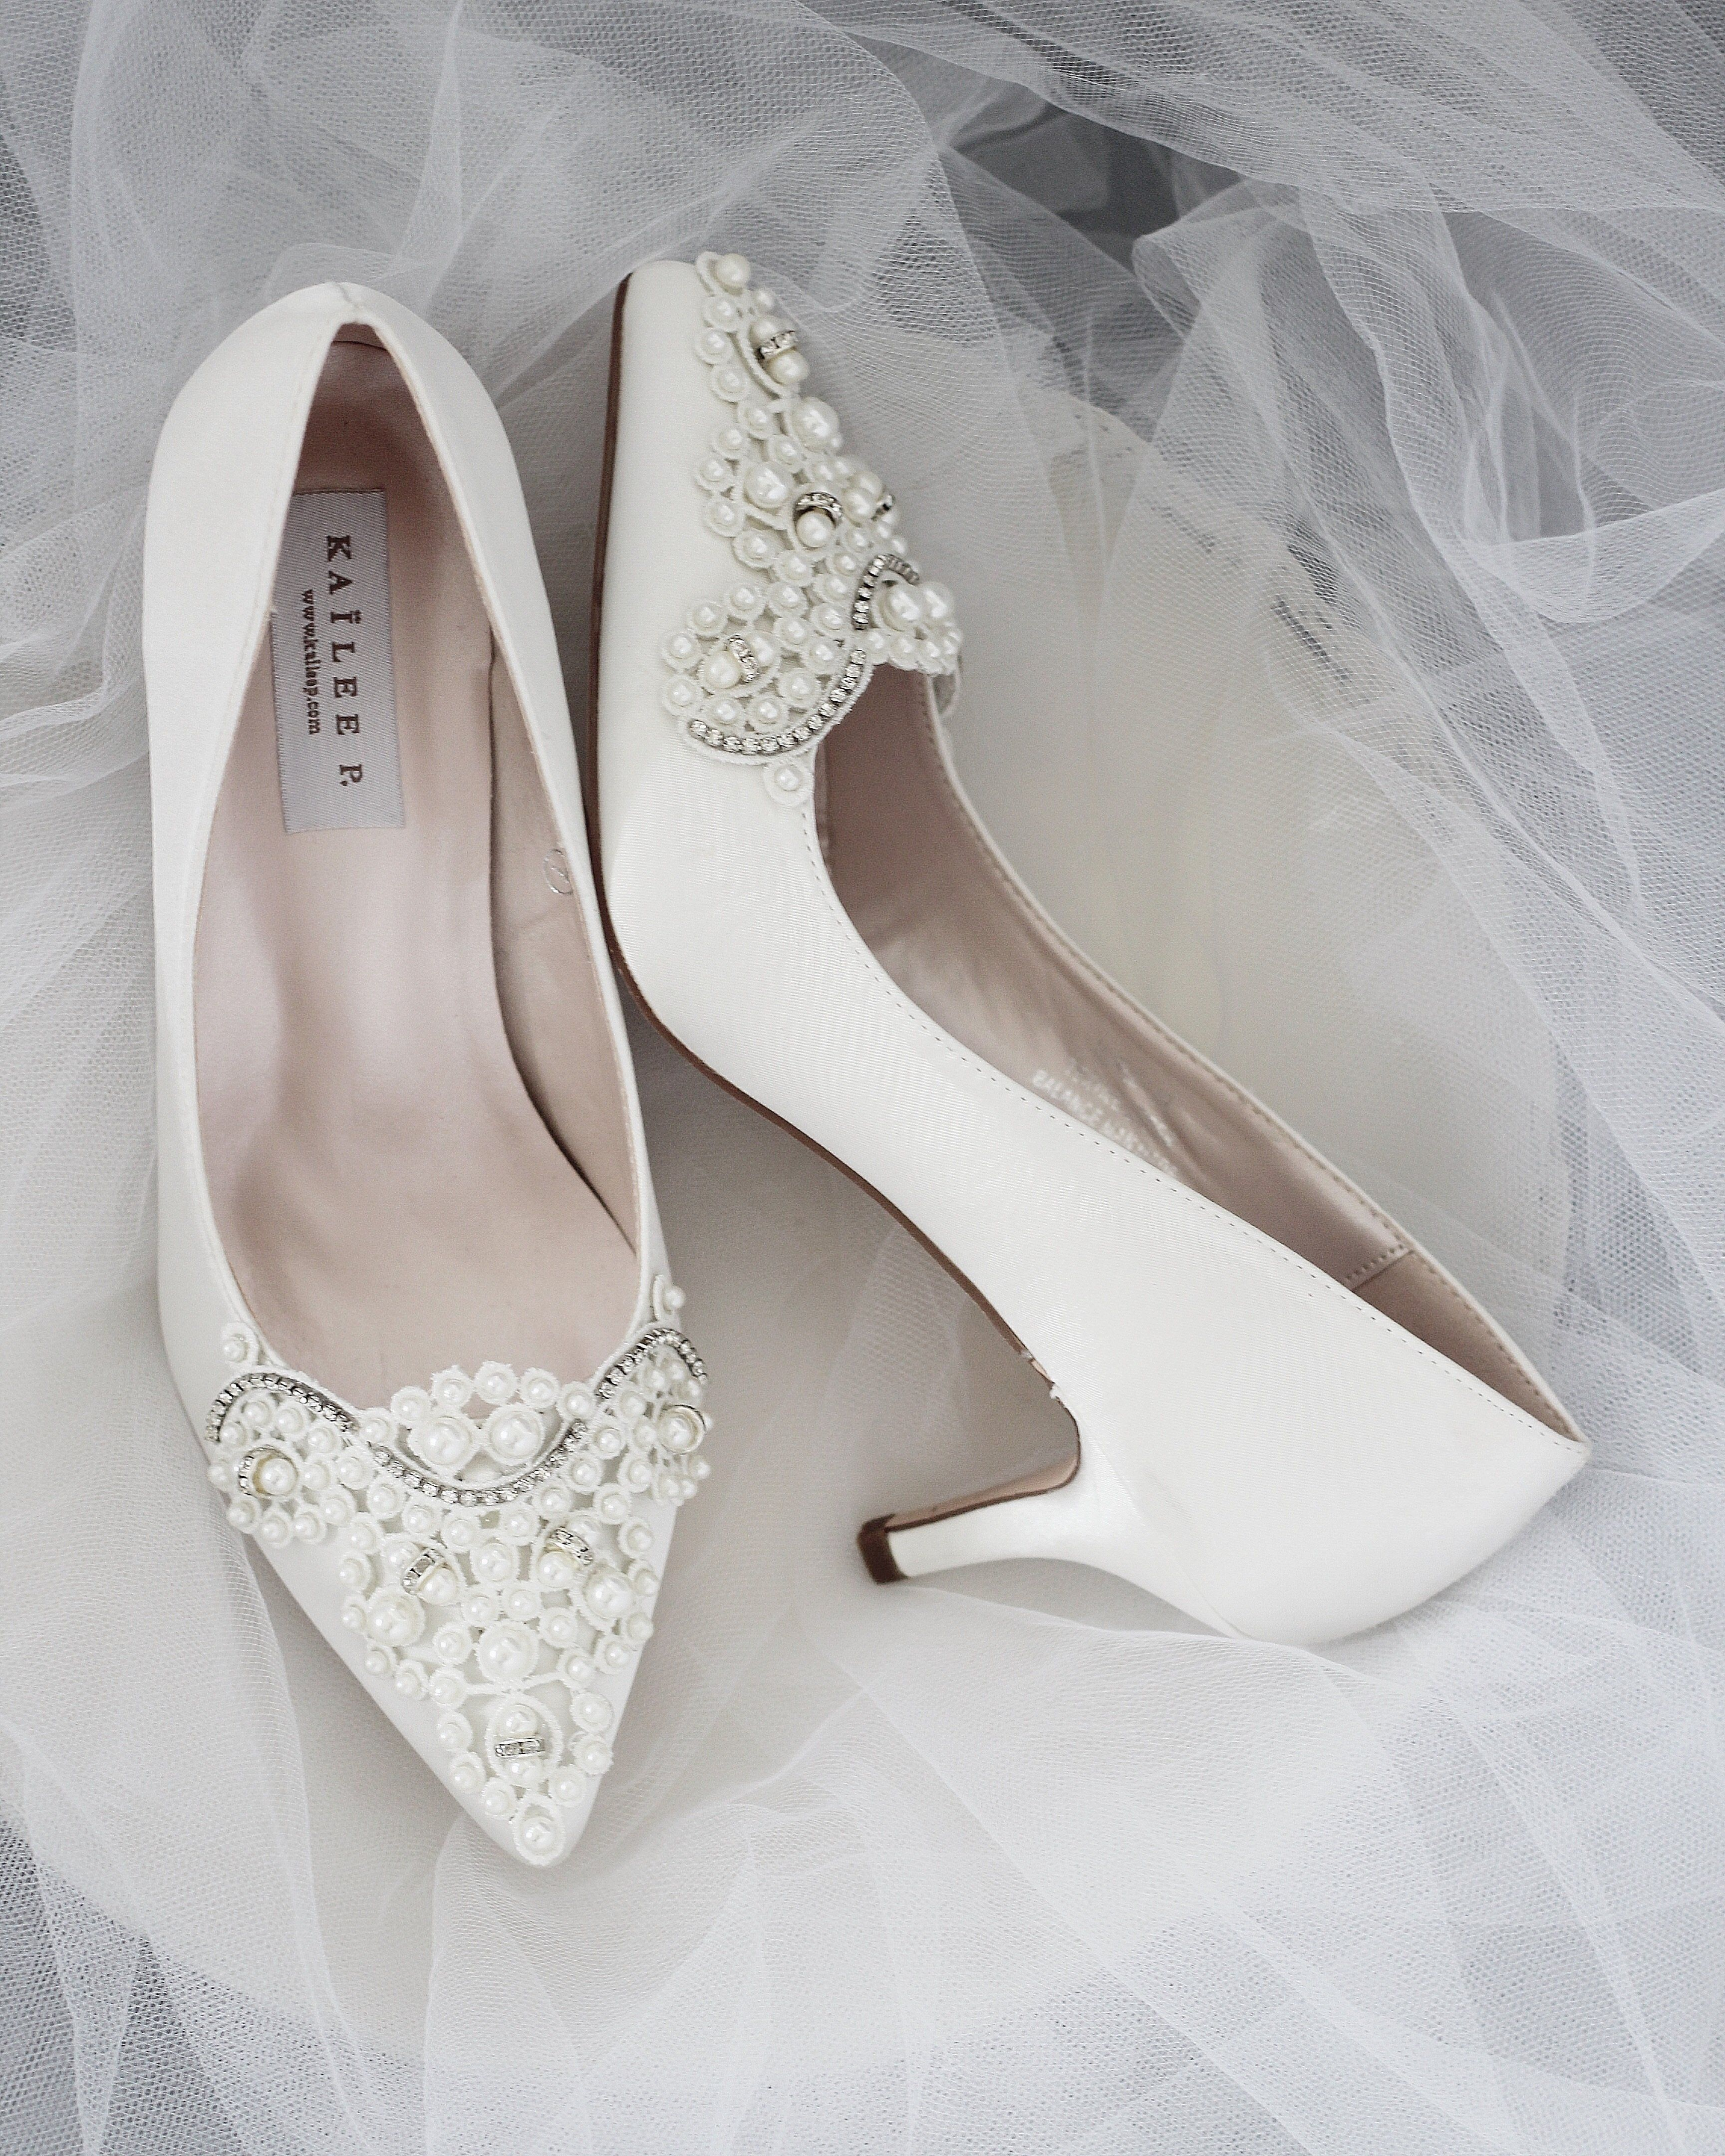 Off White Satin Pointy Toe Kitten Heel With Oversized Pearls Applique Summer Wedding Shoes Bride Shoes Beautiful Wedding Shoes